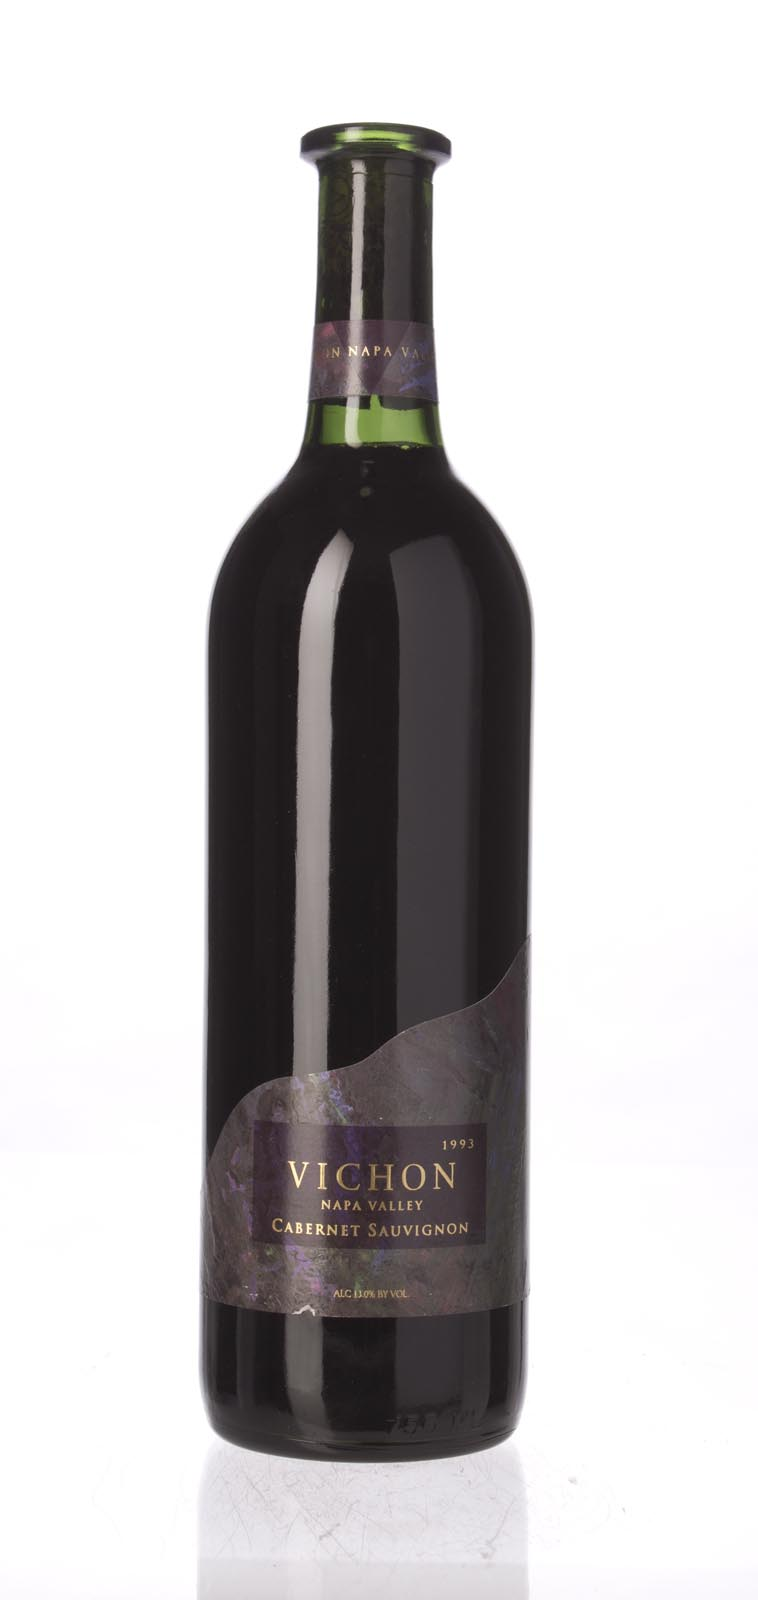 Vichon Cabernet Sauvignon Napa Valley 1993, 750mL () from The BPW - Merchants of rare and fine wines.